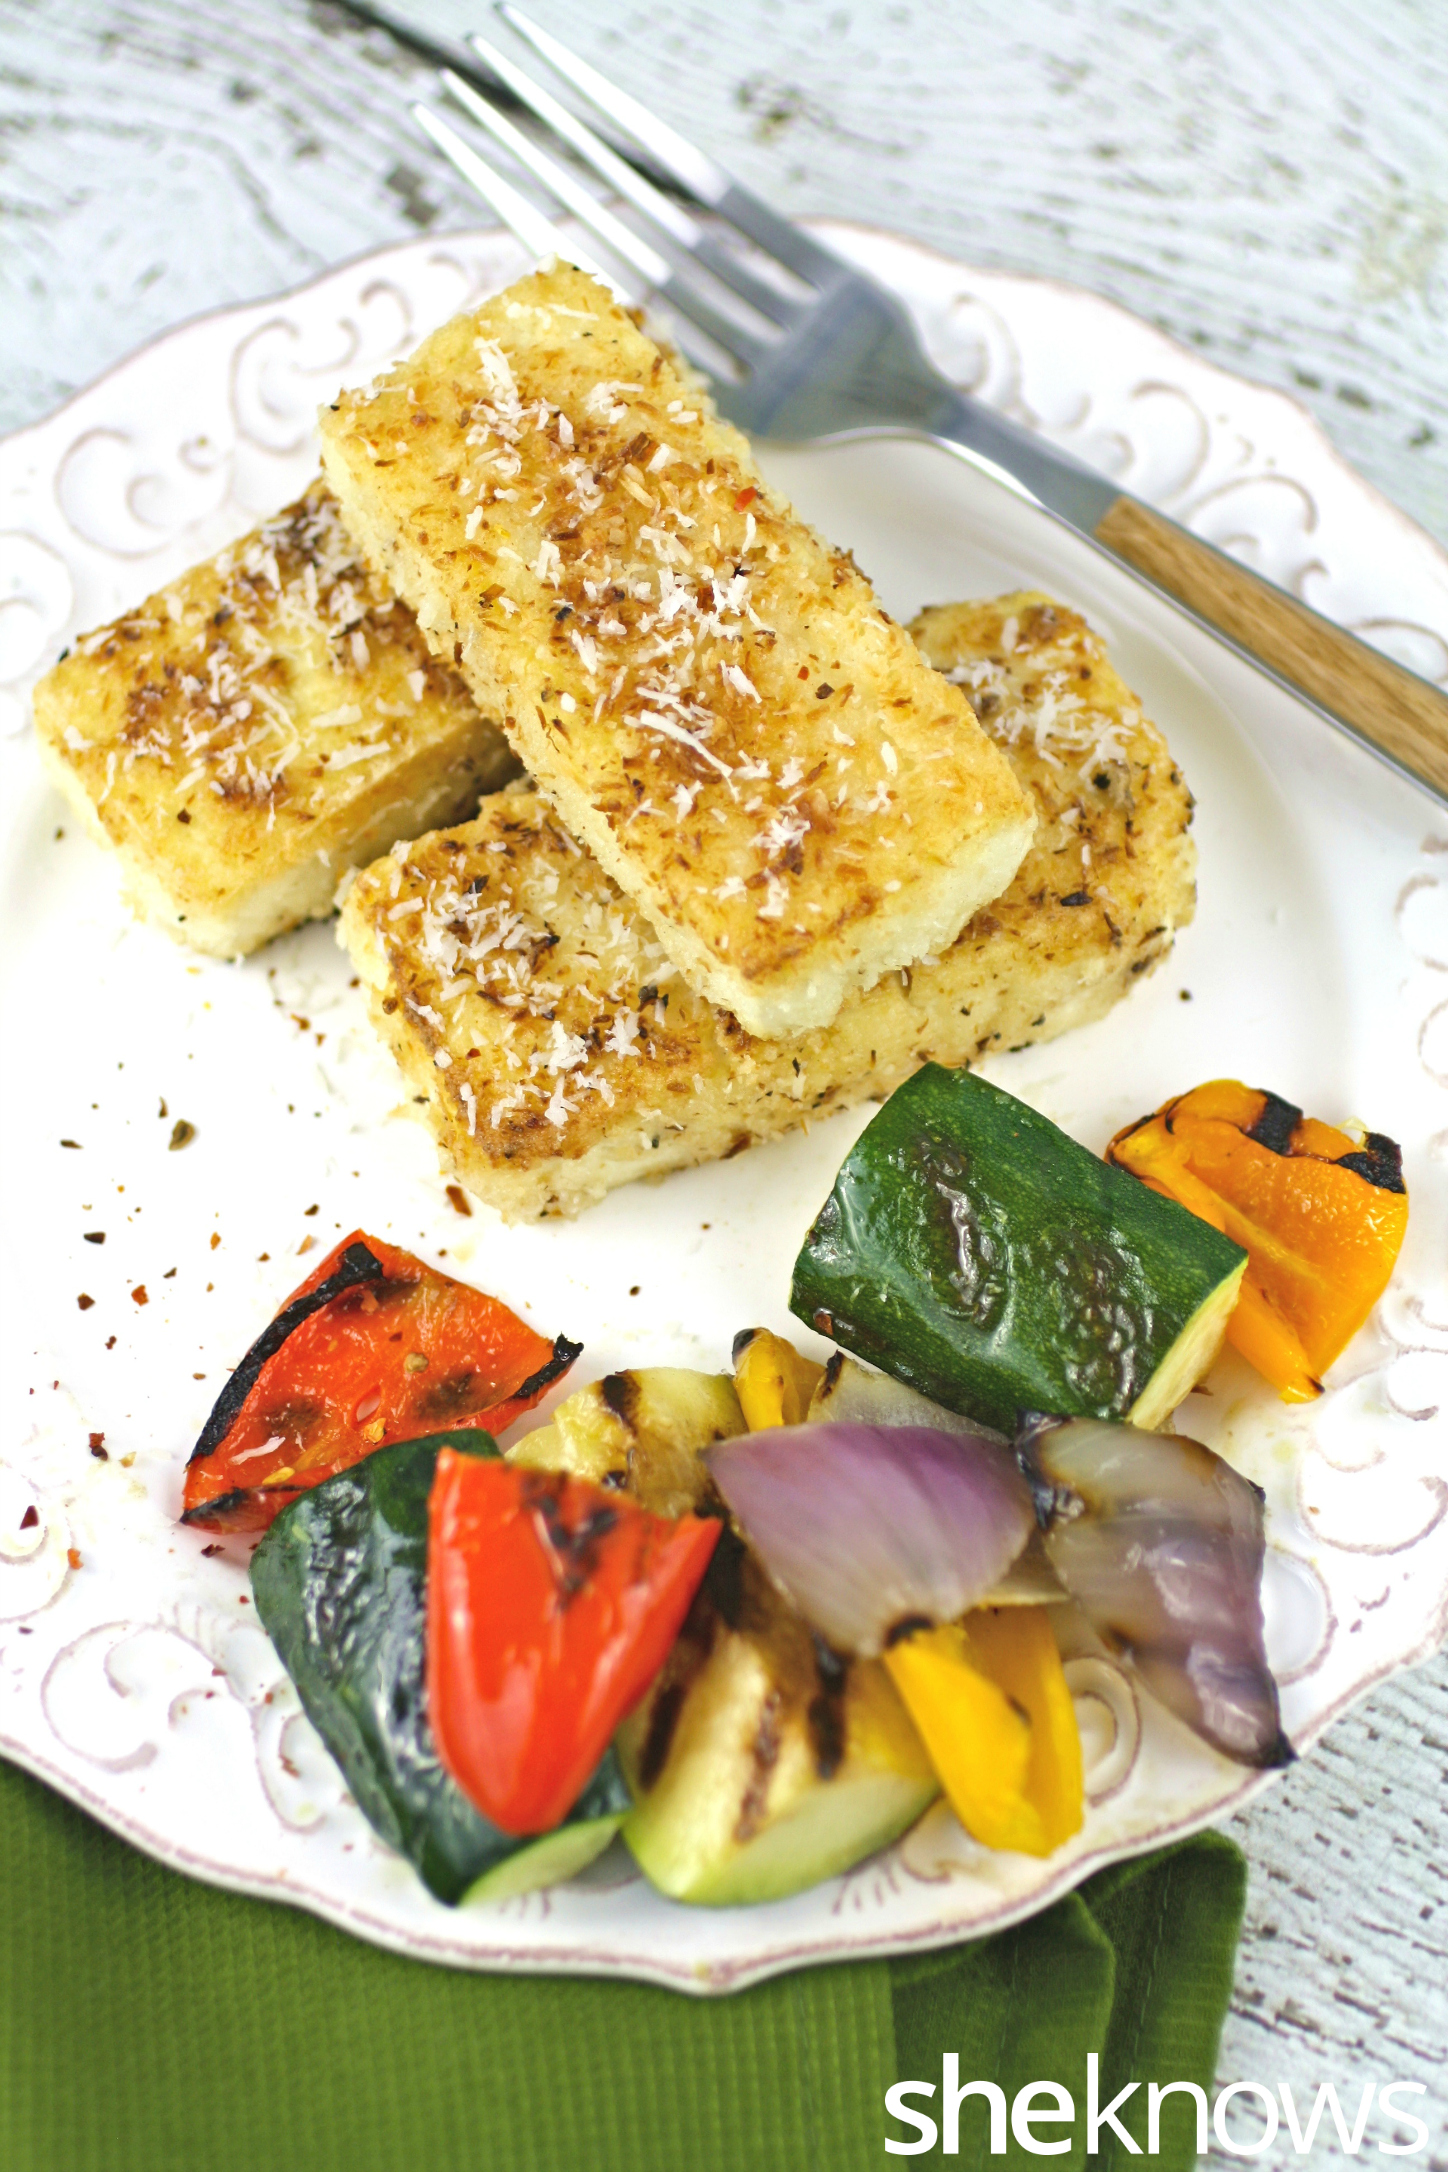 Enjoy this delicious dish: Coconut-crusted tofu with spicy peanut sauce is amazing!